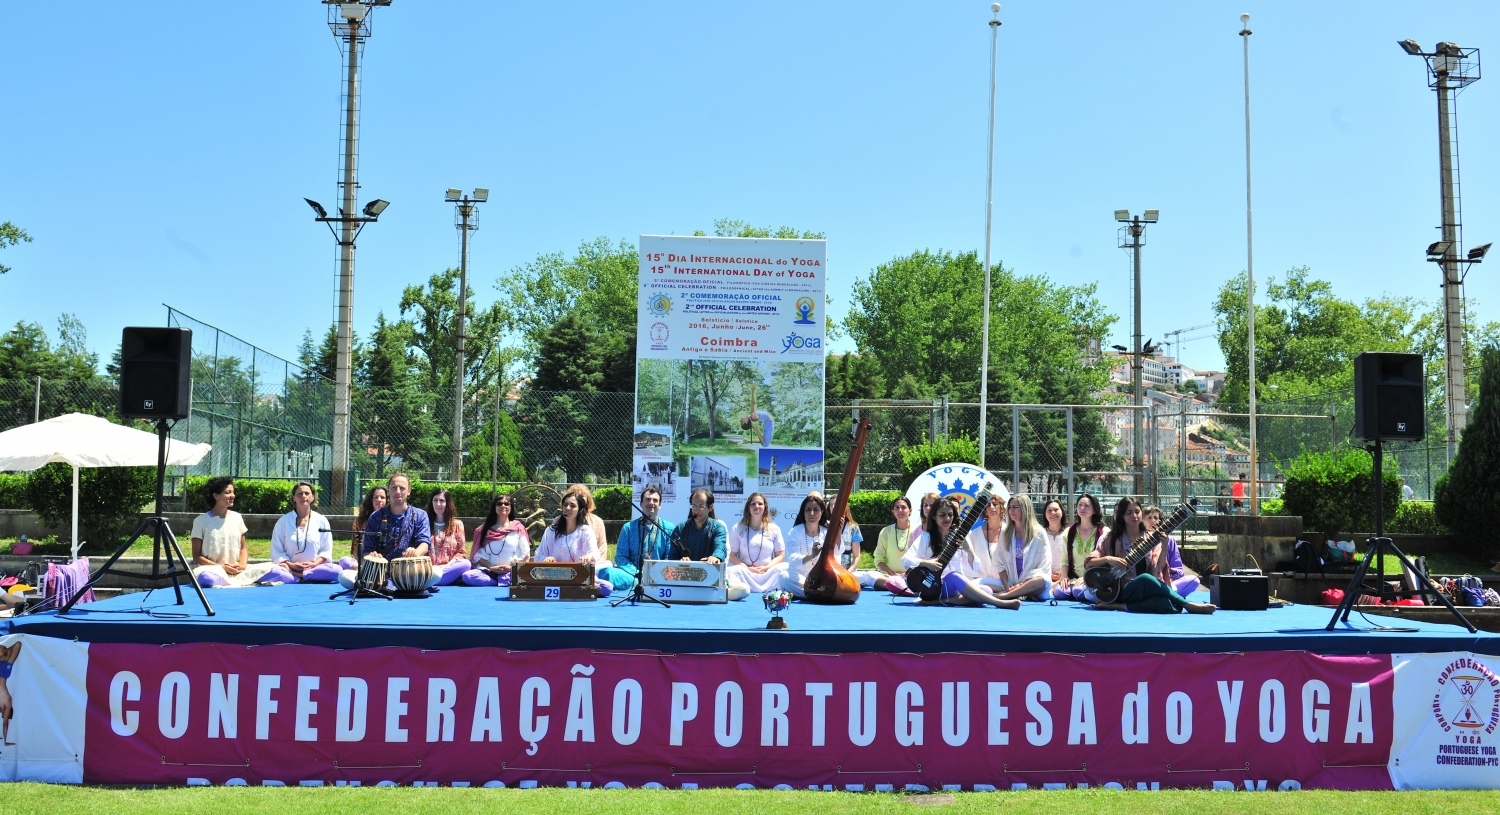 International Day of Yoga 2016, Coimbra